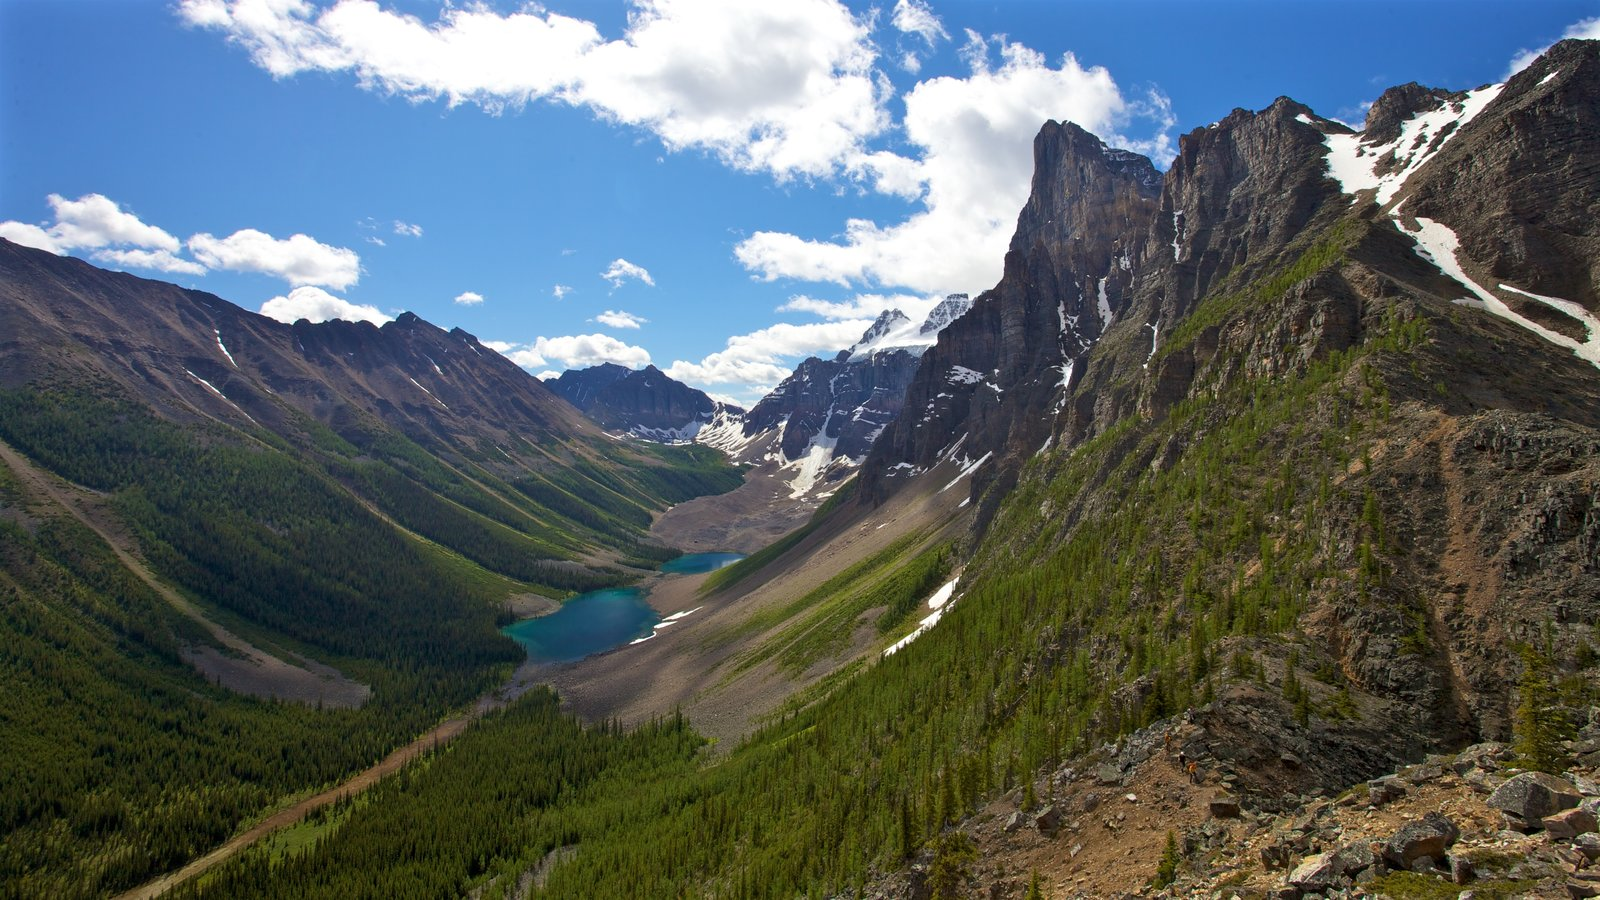 Moraine Lake which includes mountains and landscape views